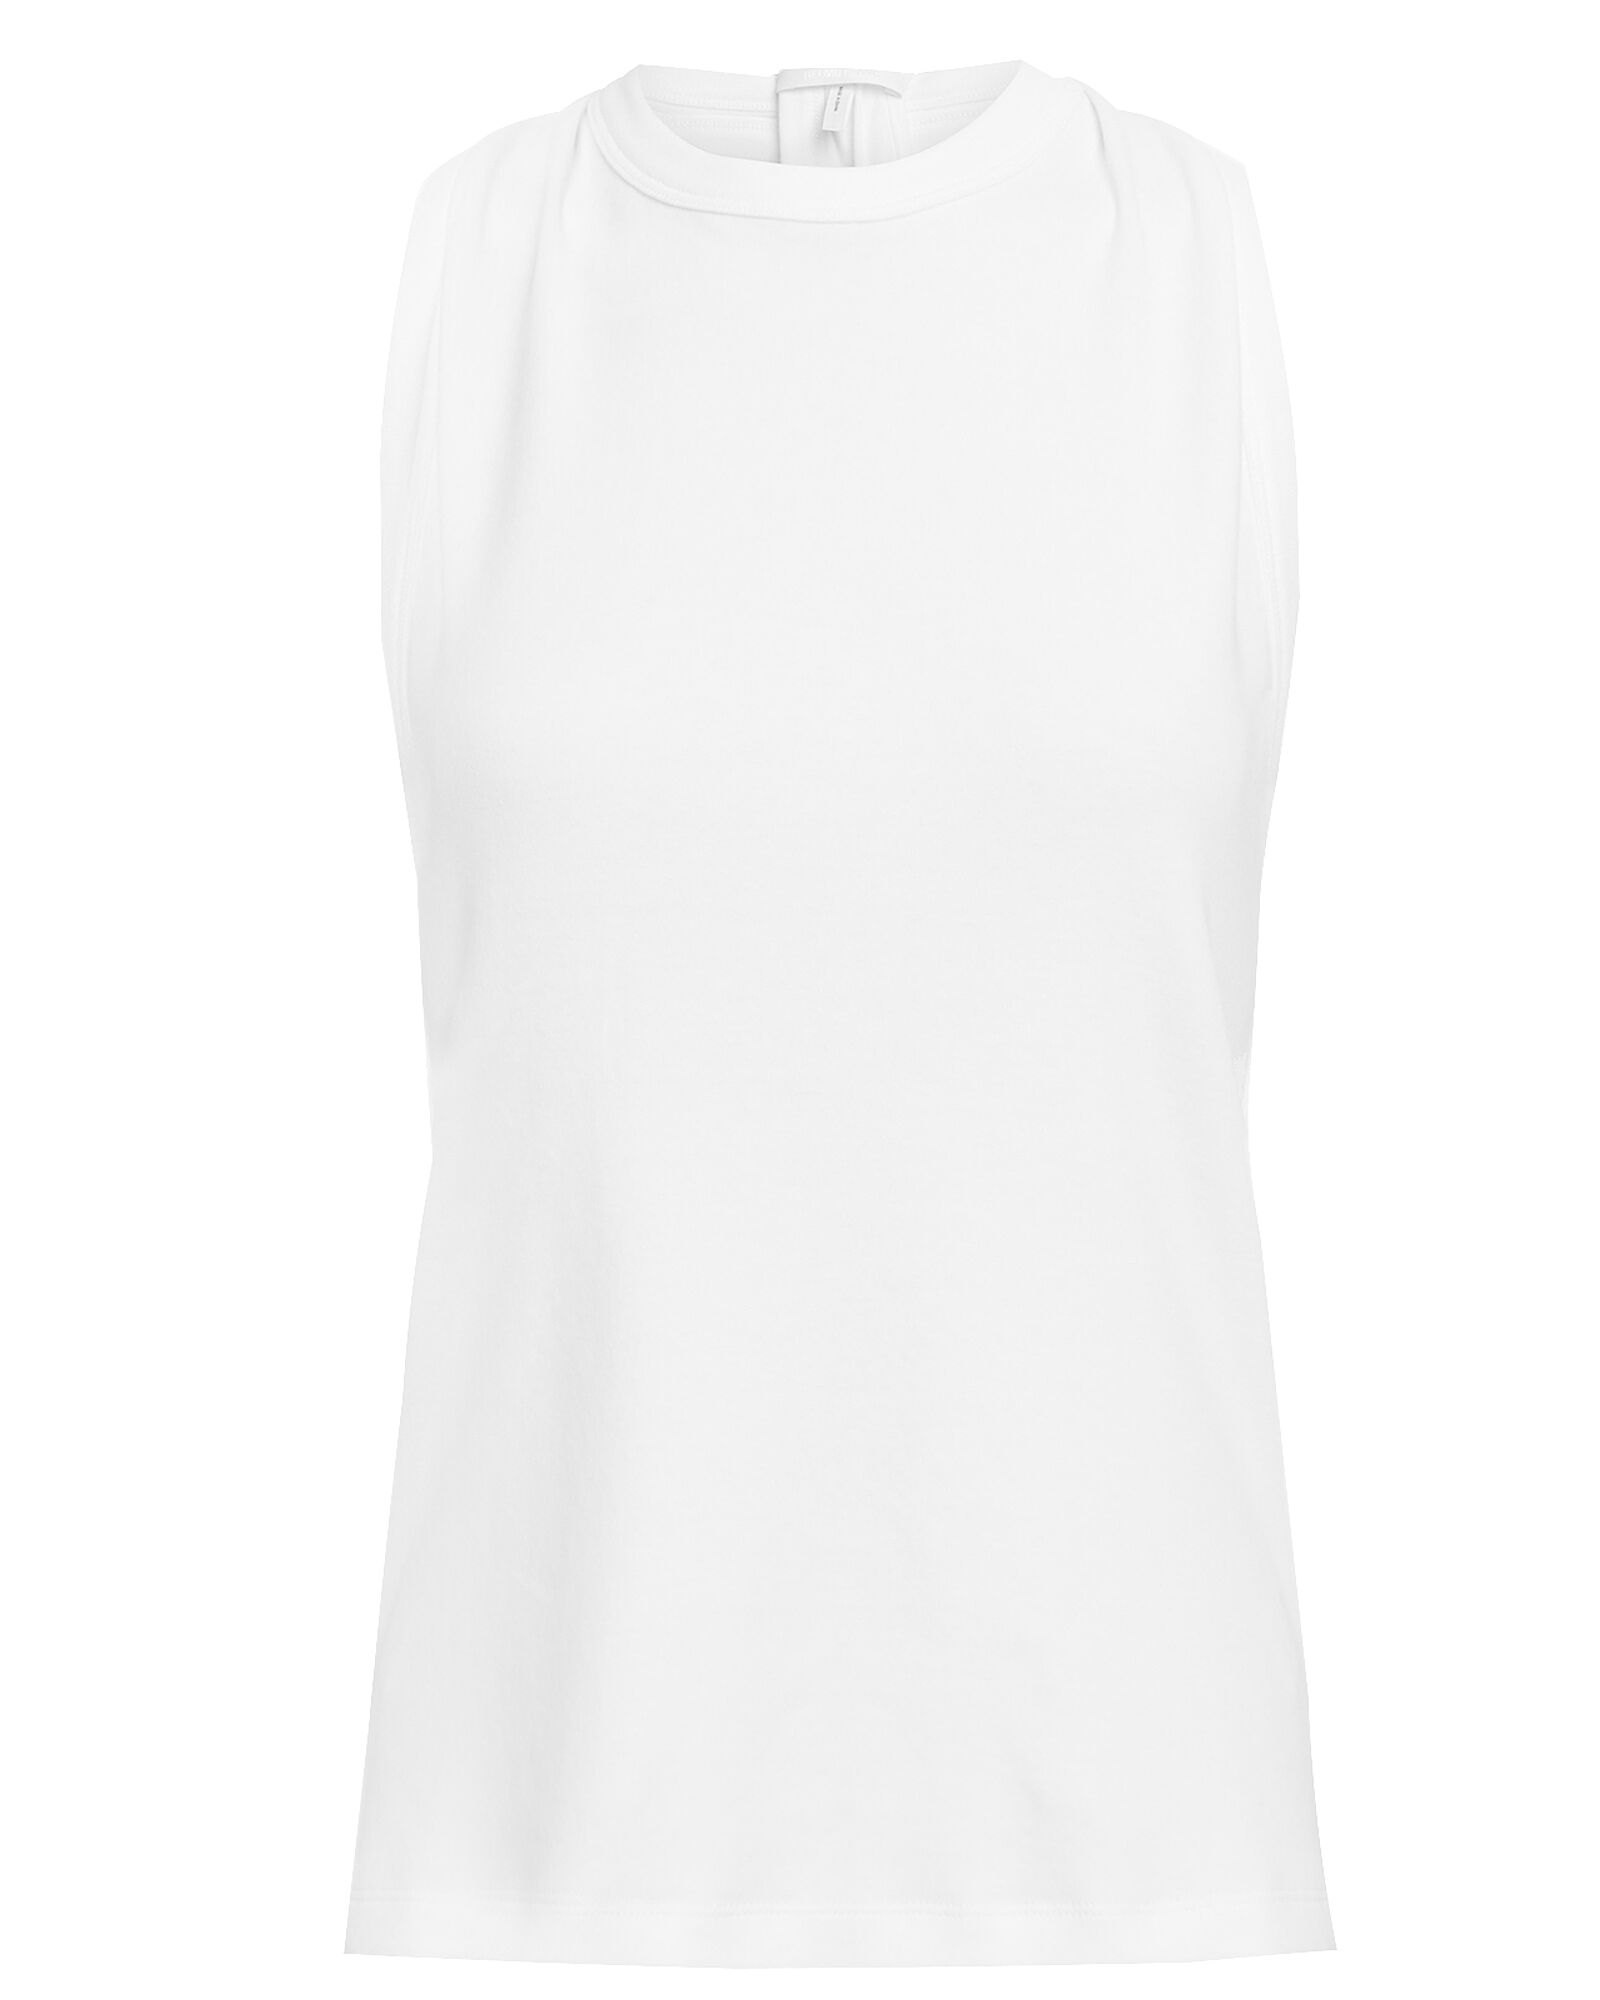 Crepe Jersey Tank Top, WHITE, hi-res